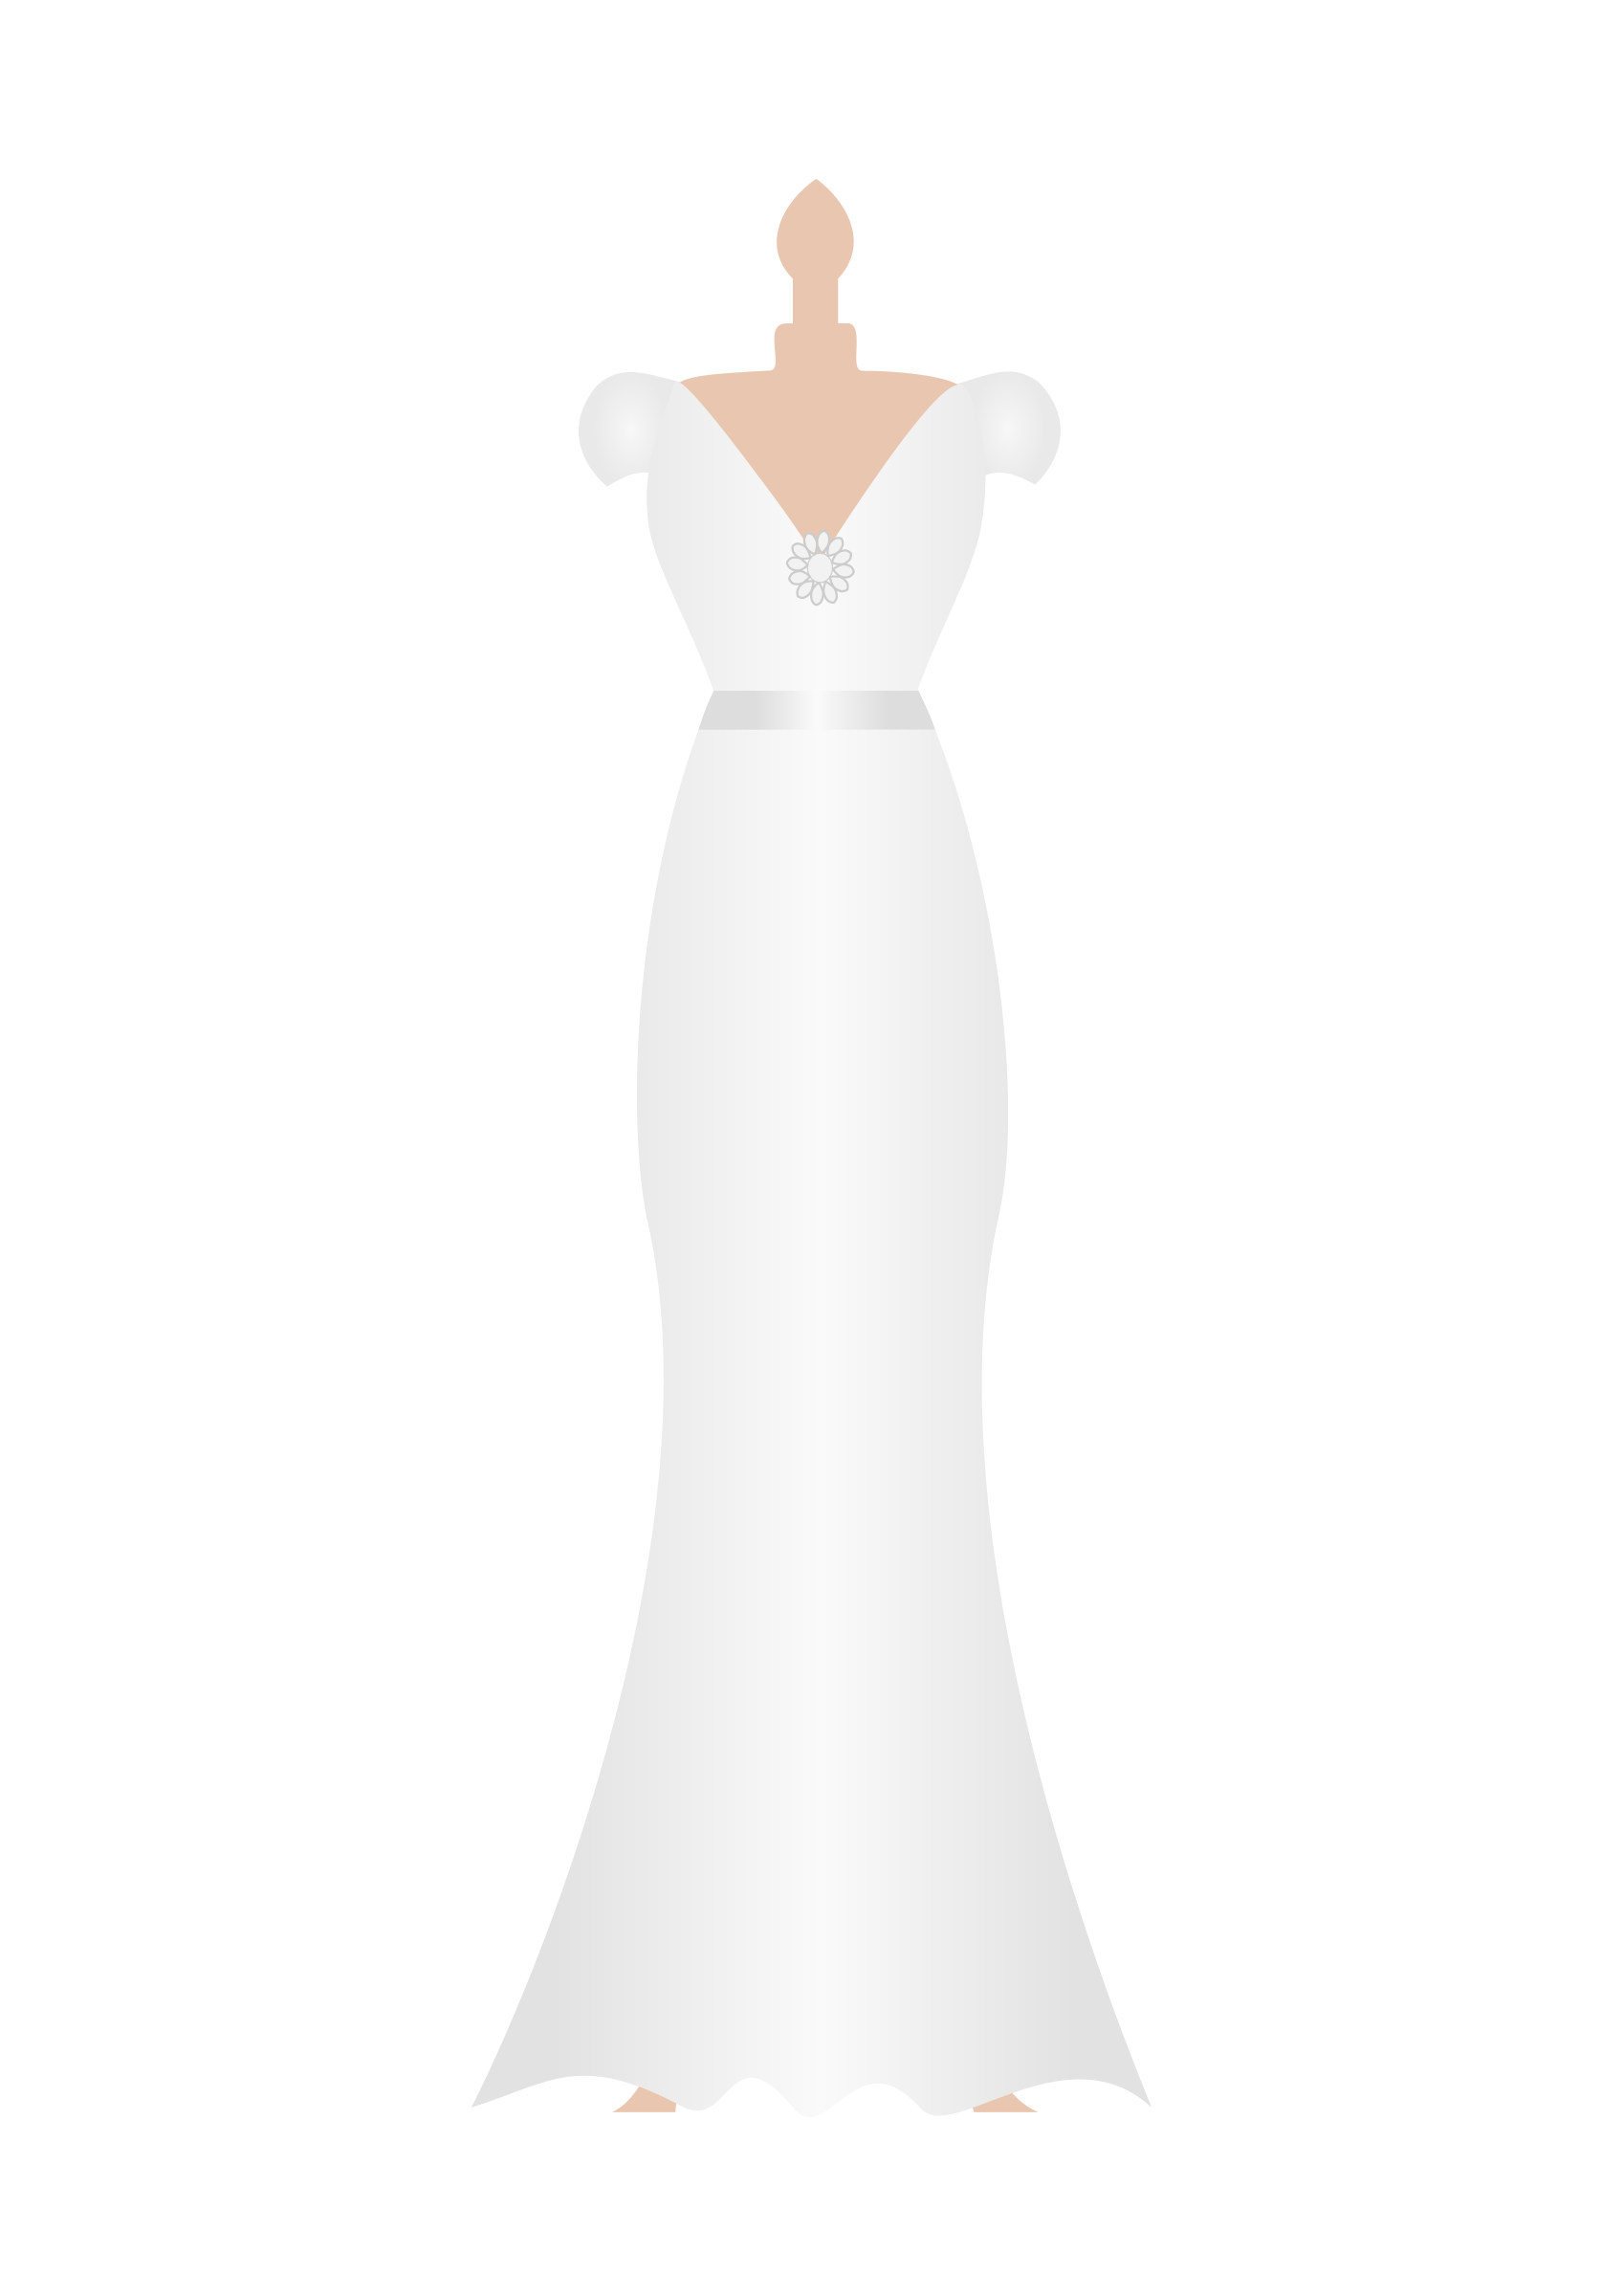 Wedding dress clipart png.